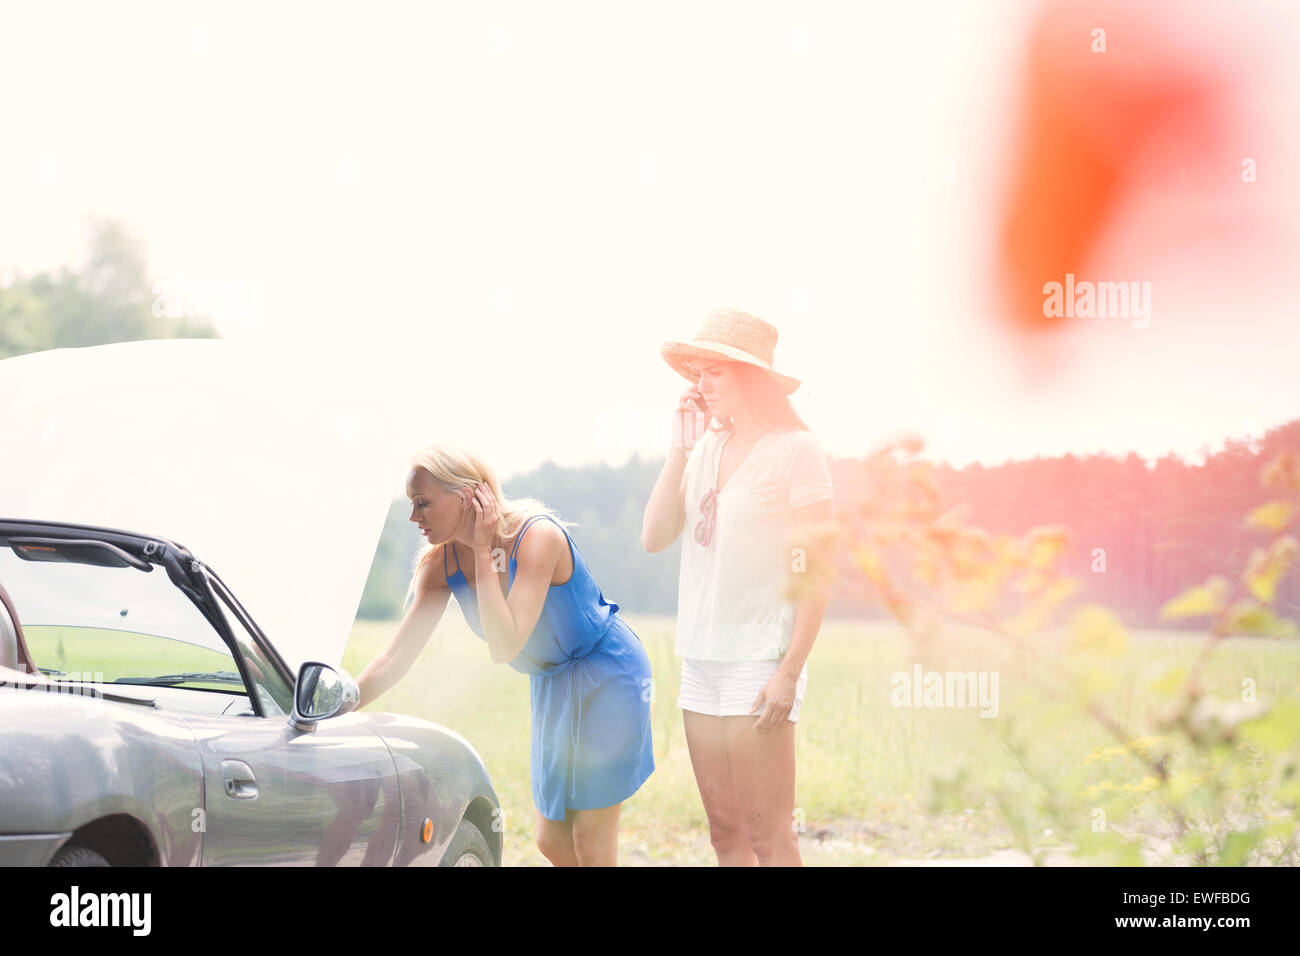 Woman using cell phone while friend examining broken down car - Stock Image